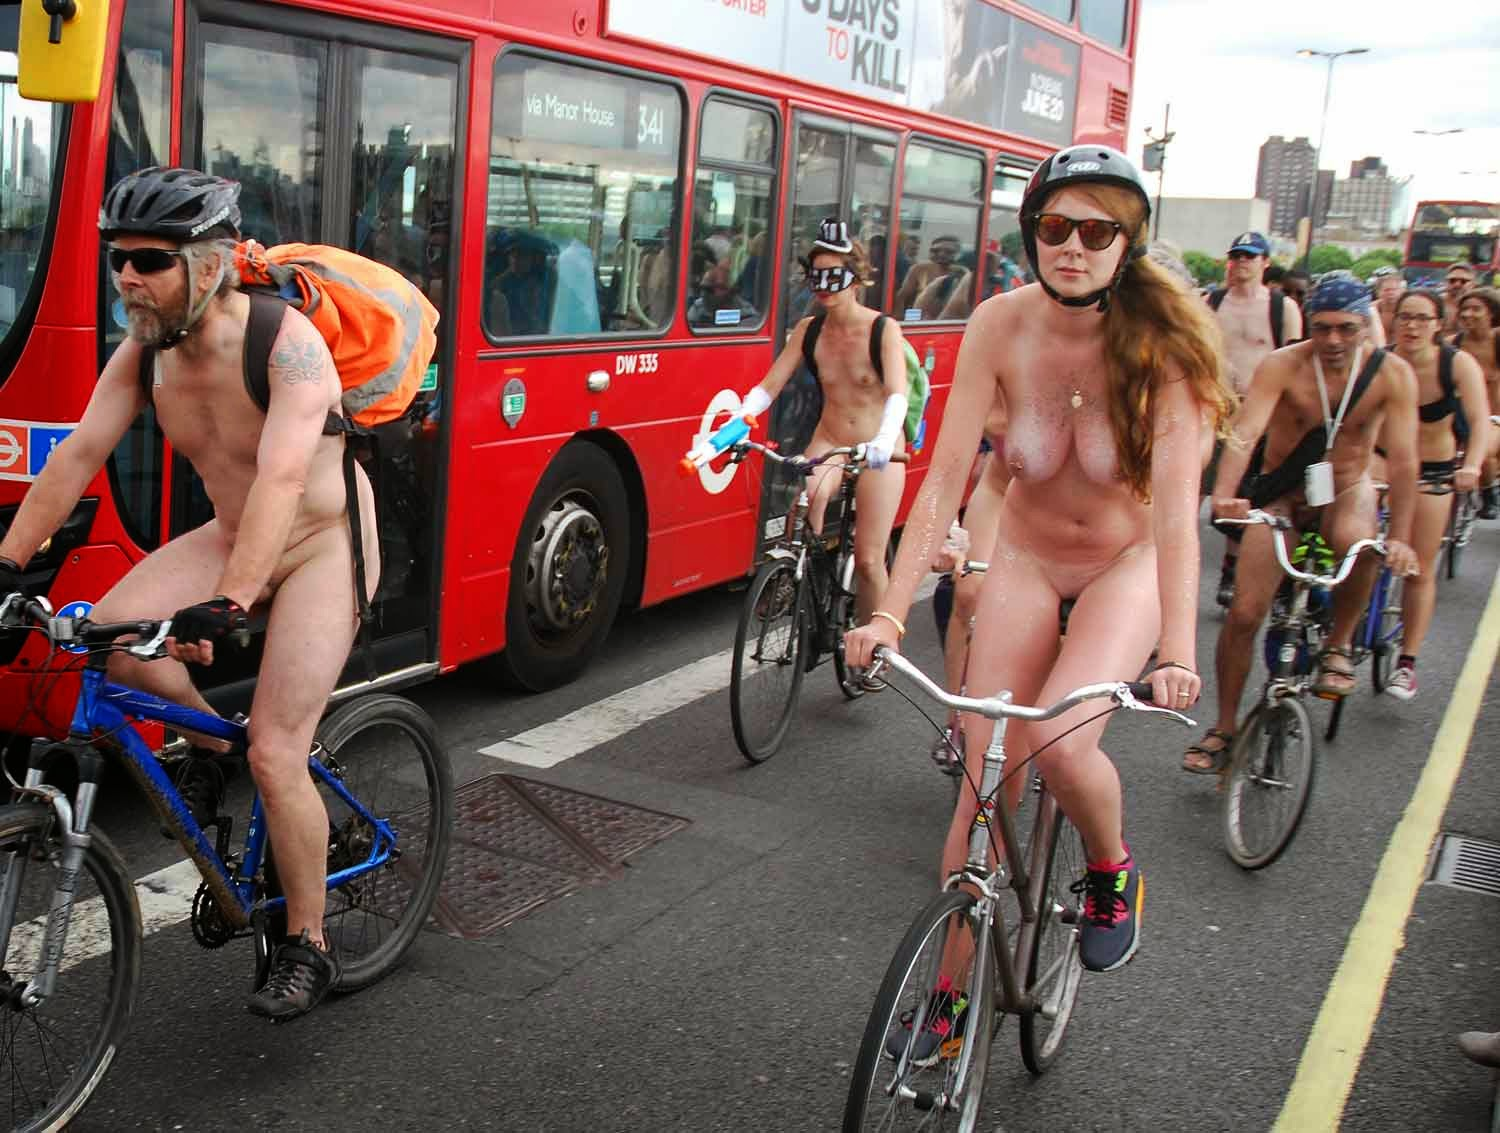 Naked bike ride for peace